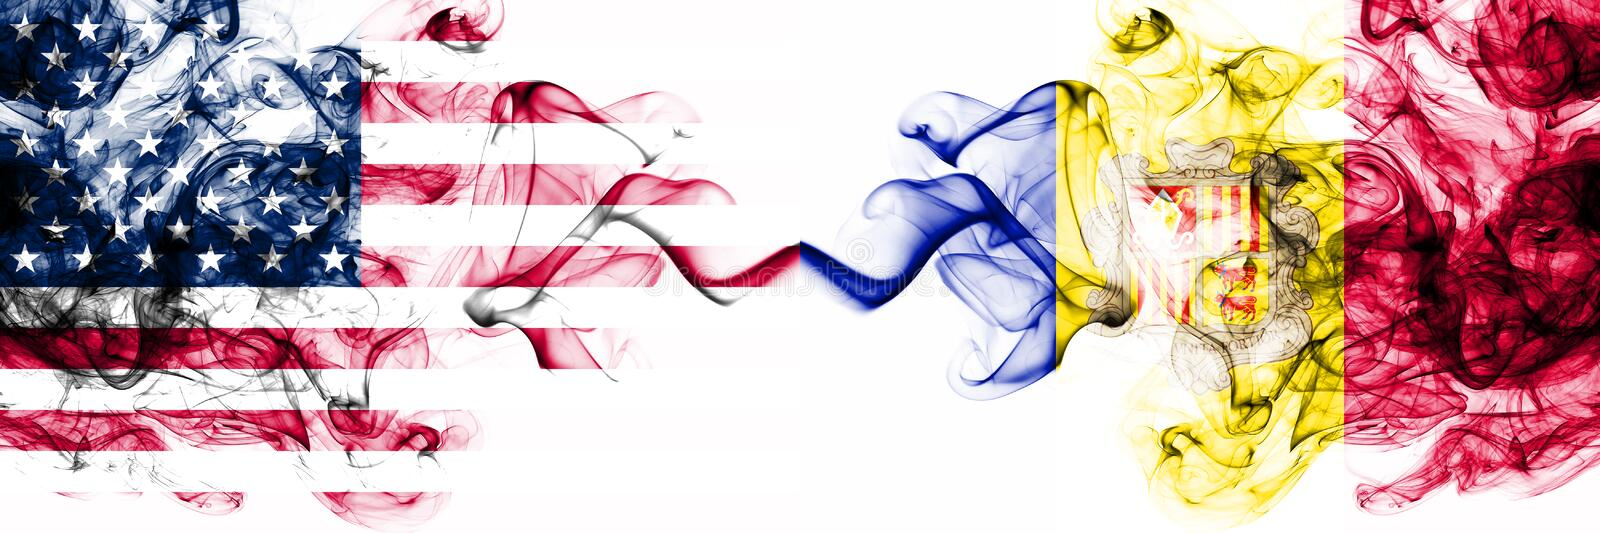 United States of America vs Andorra, Andorran smoky mystic flags placed side by side. Thick colored silky abstract smokes banner. Of America and Andorra royalty free illustration